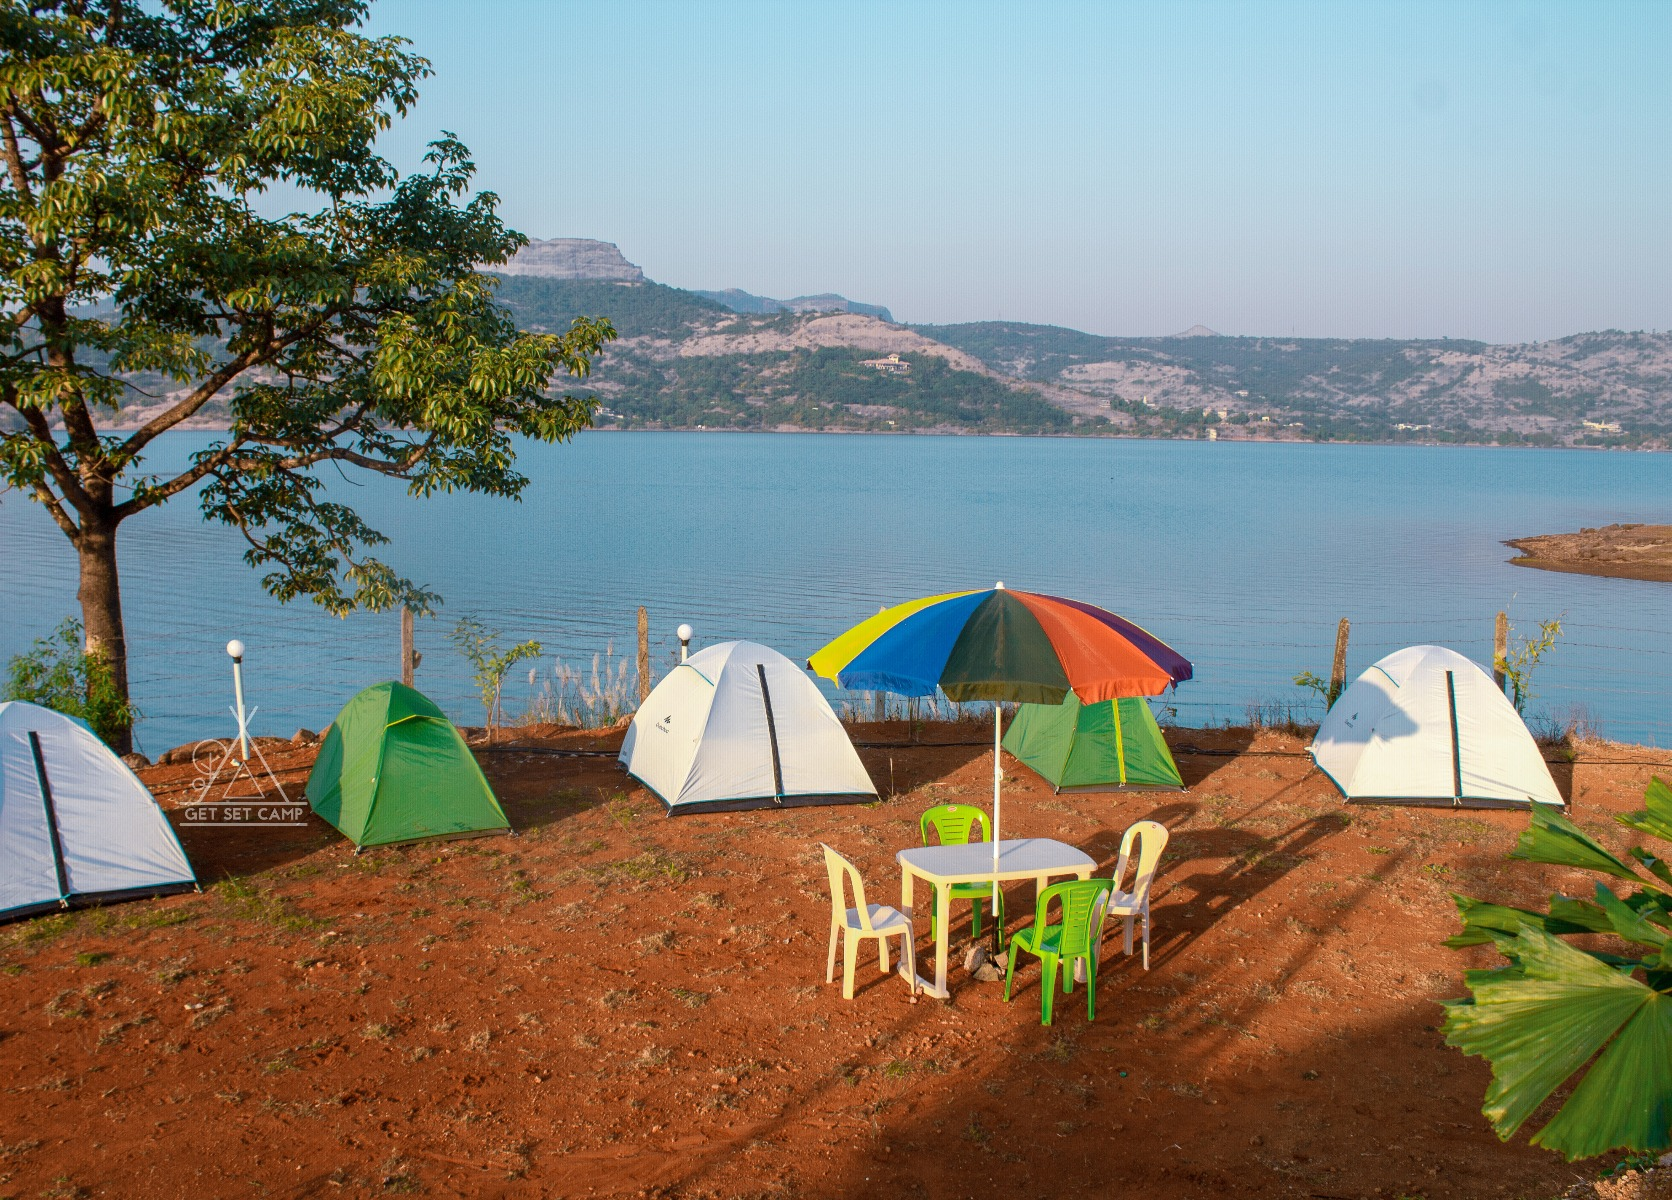 Pawna Deluxe Lakeside Camping